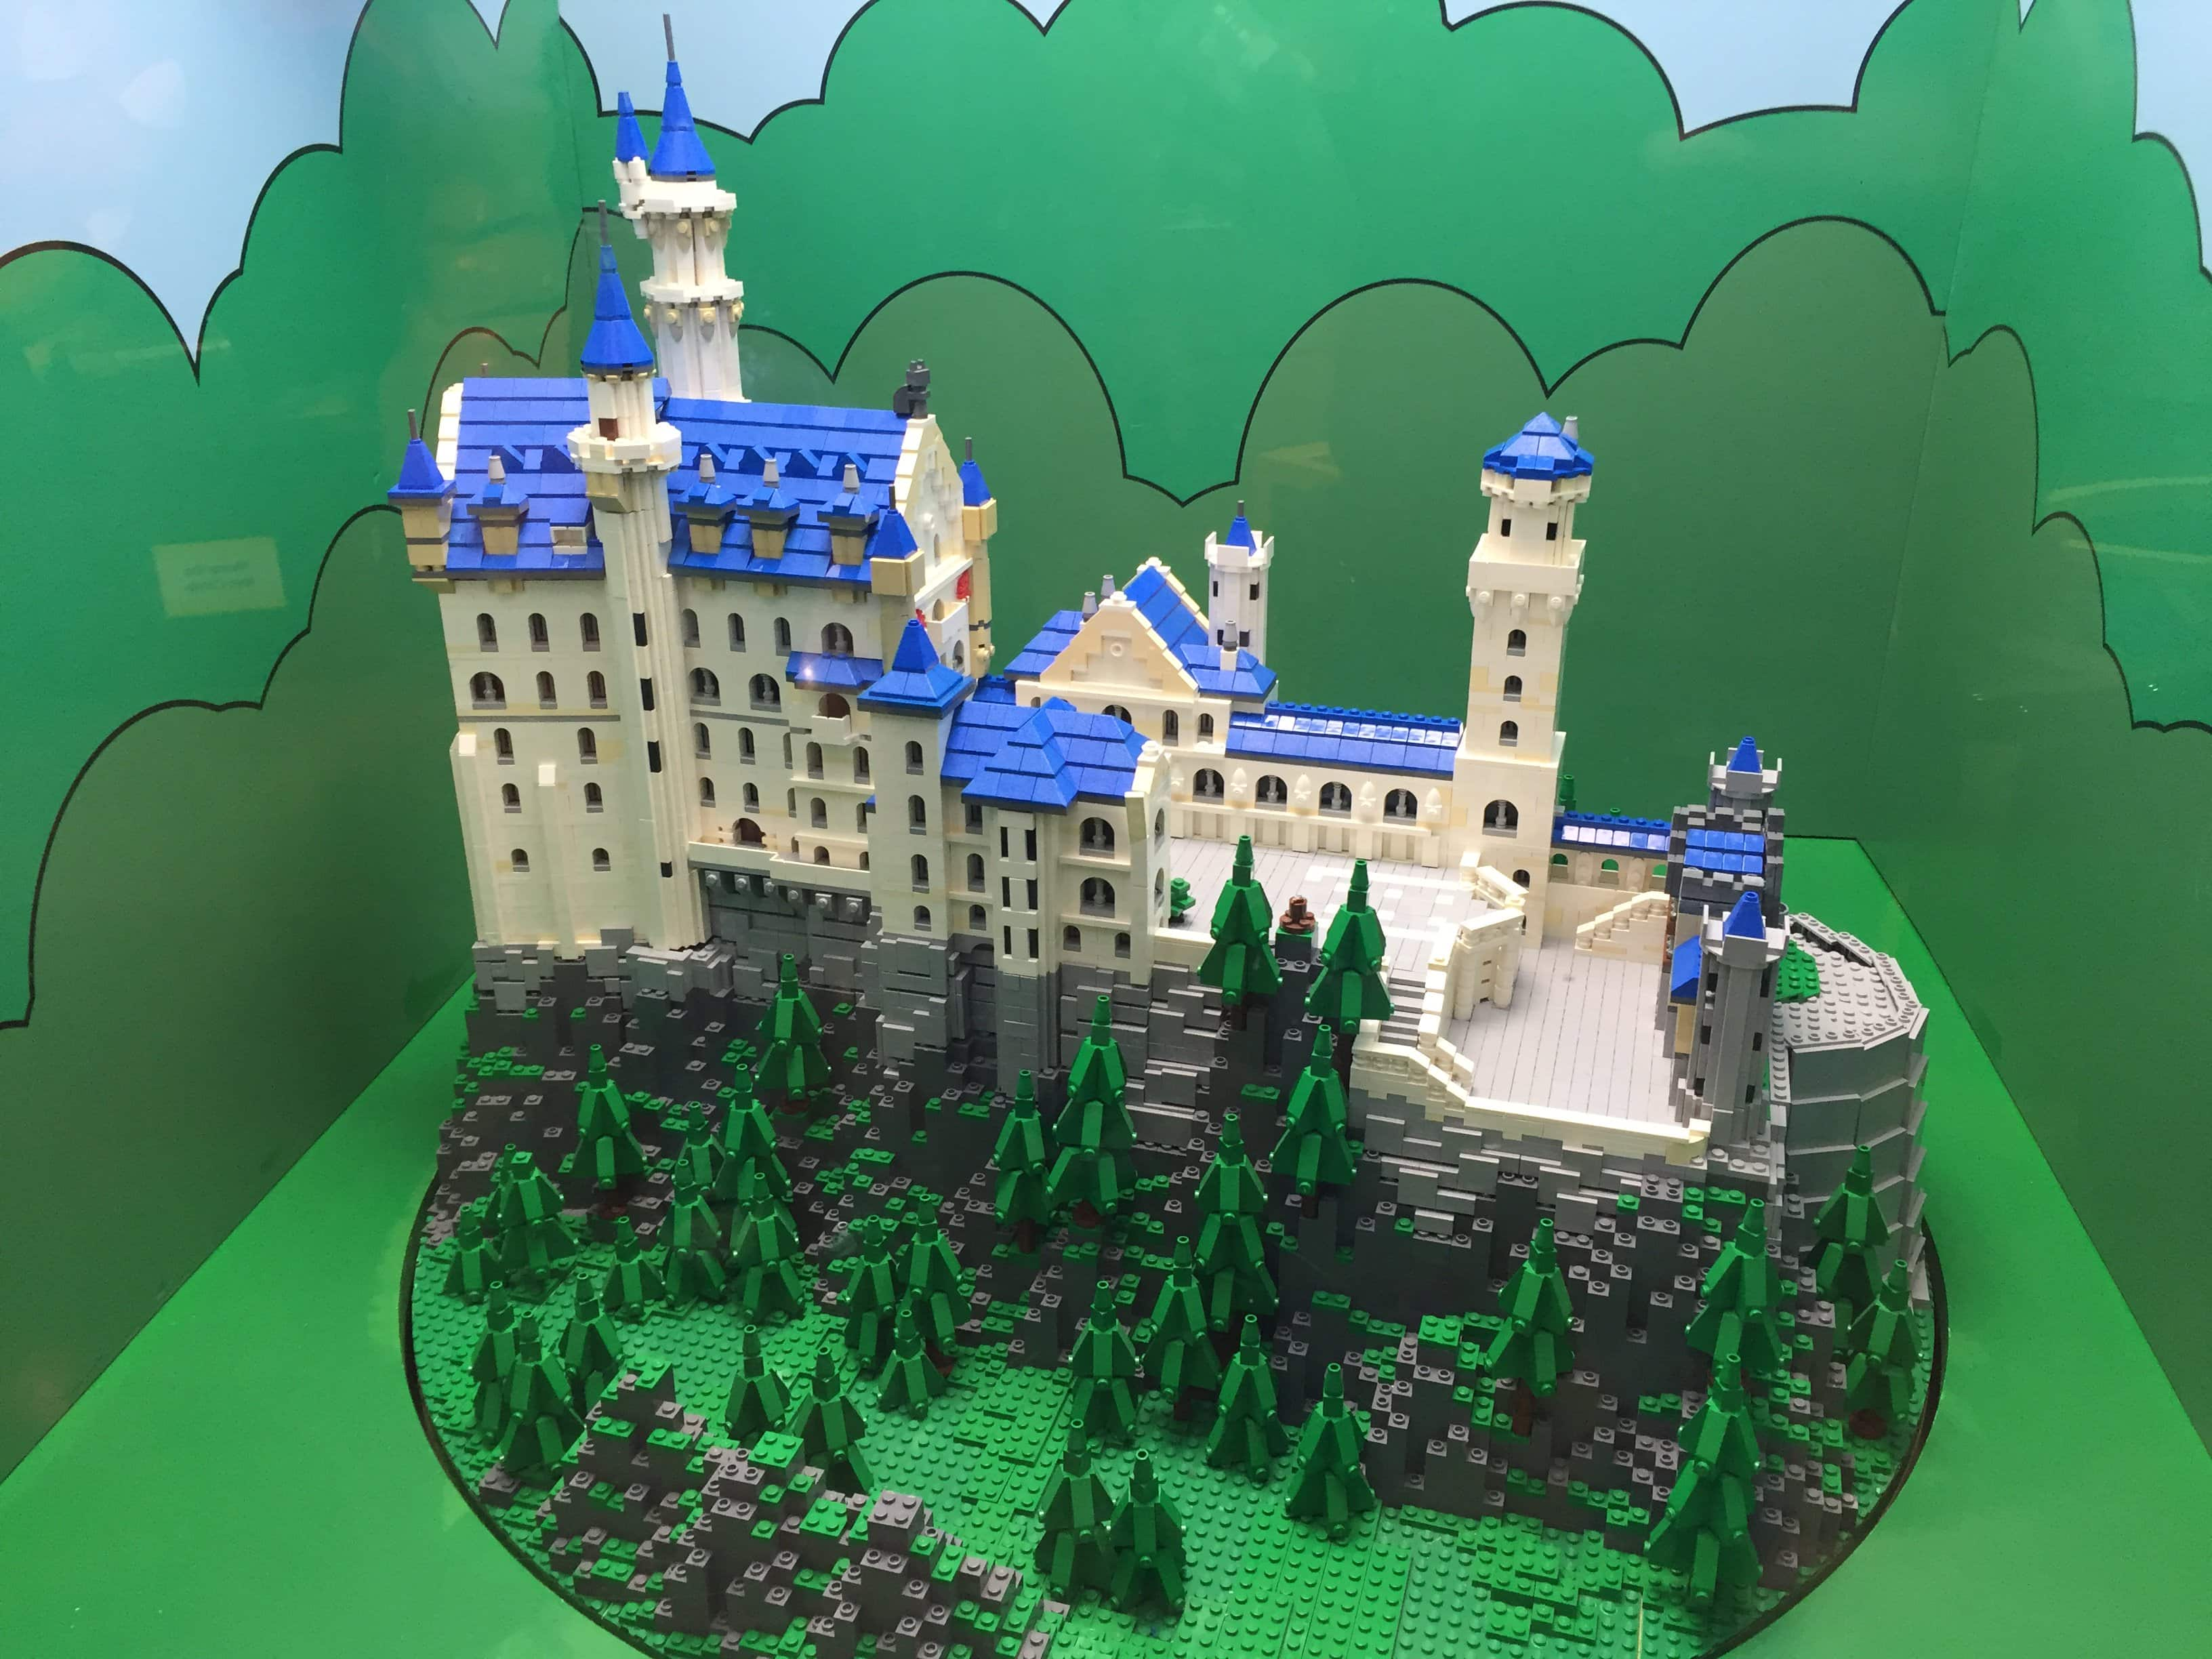 Sci Tech Discovery Center Brings Castle Builder Exhibit To